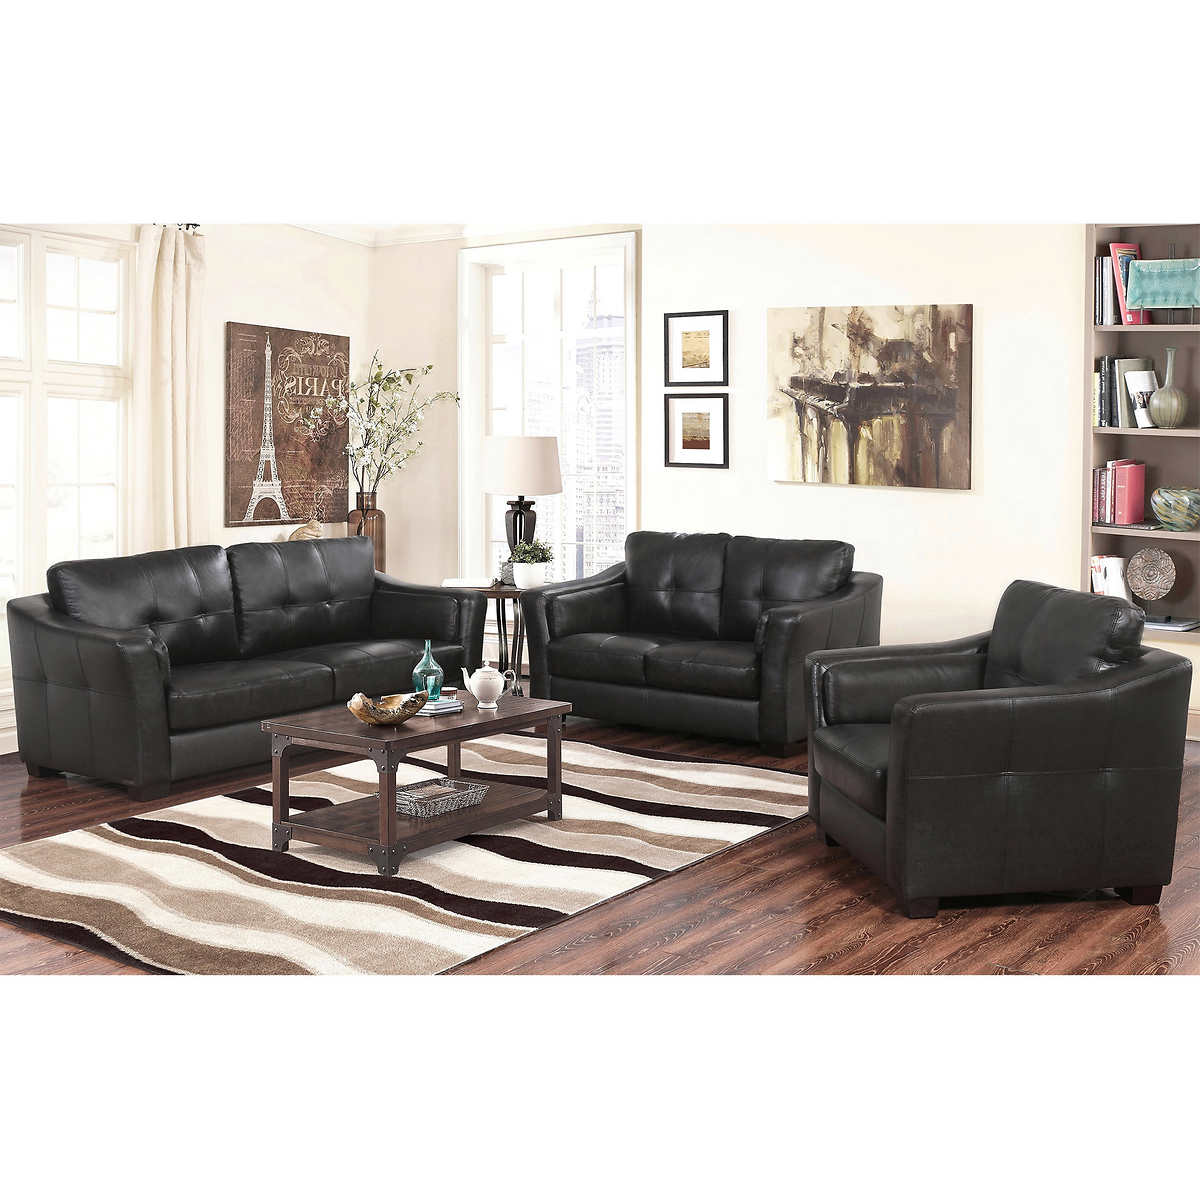 Top Grain Leather Living Room Set Lincoln 3 Piece Top Grain Leather Living Room Set